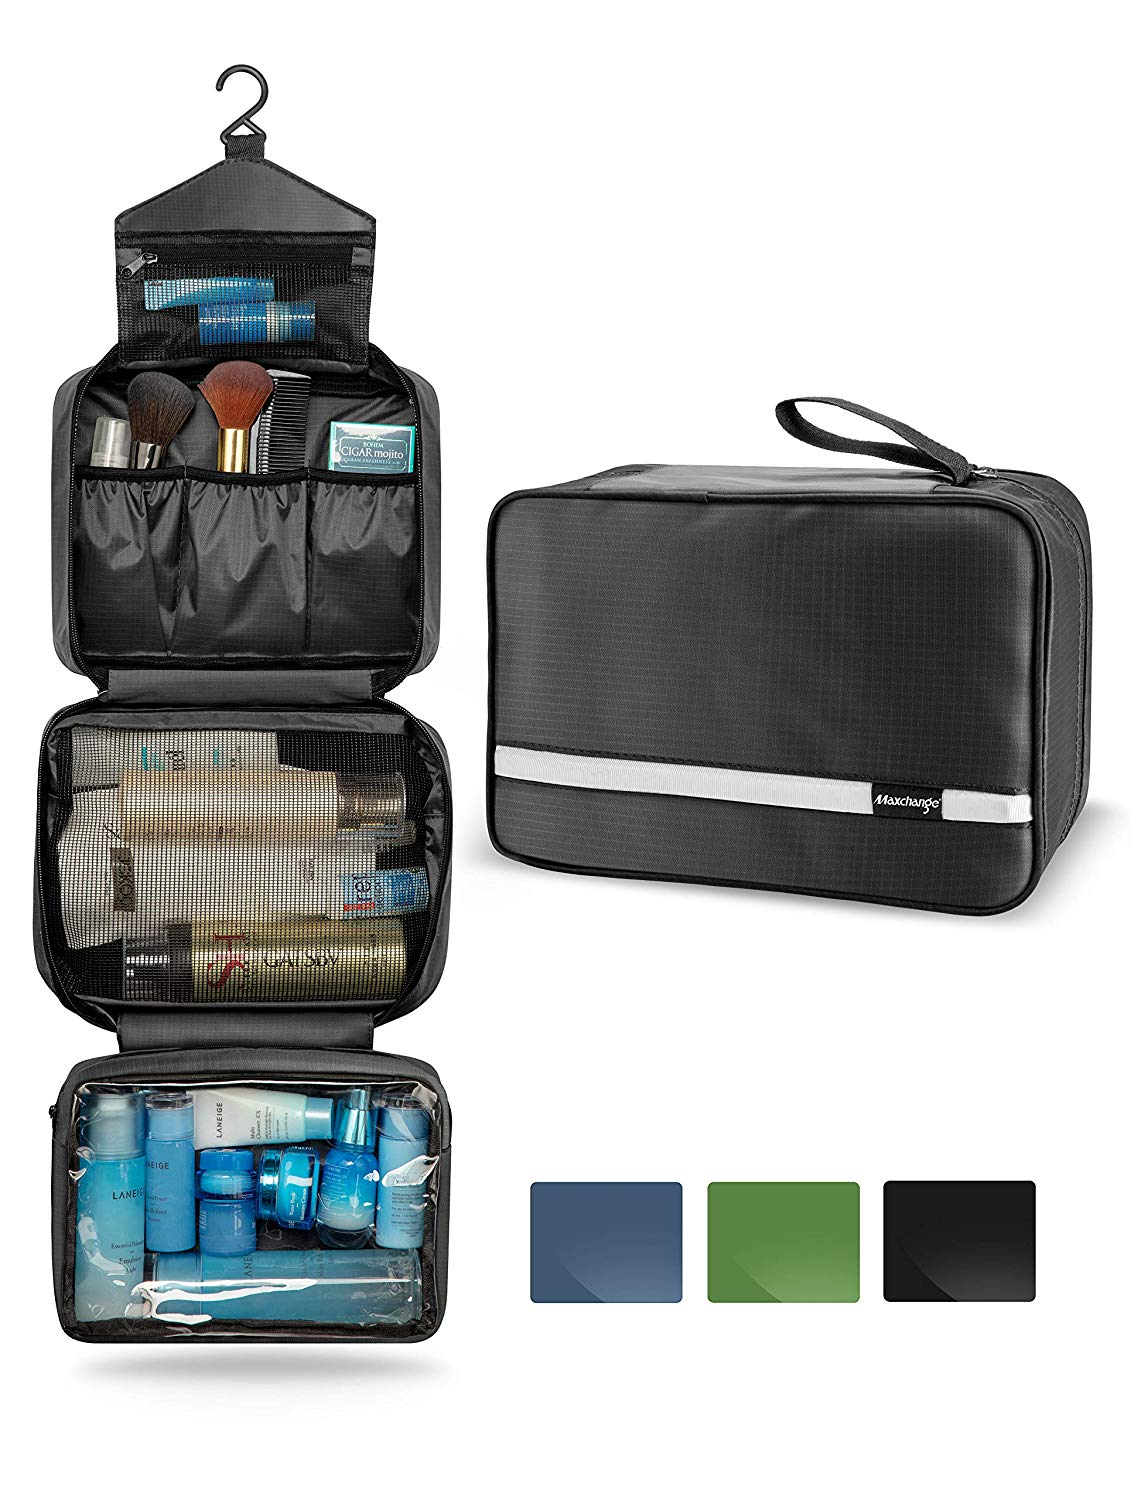 e8f95dedde8 Get Quotations · Mens Travel Toiletry Bag, Maxchange Hanging Toiletry Bag    Foldable Bathroom Kit with 6.8L